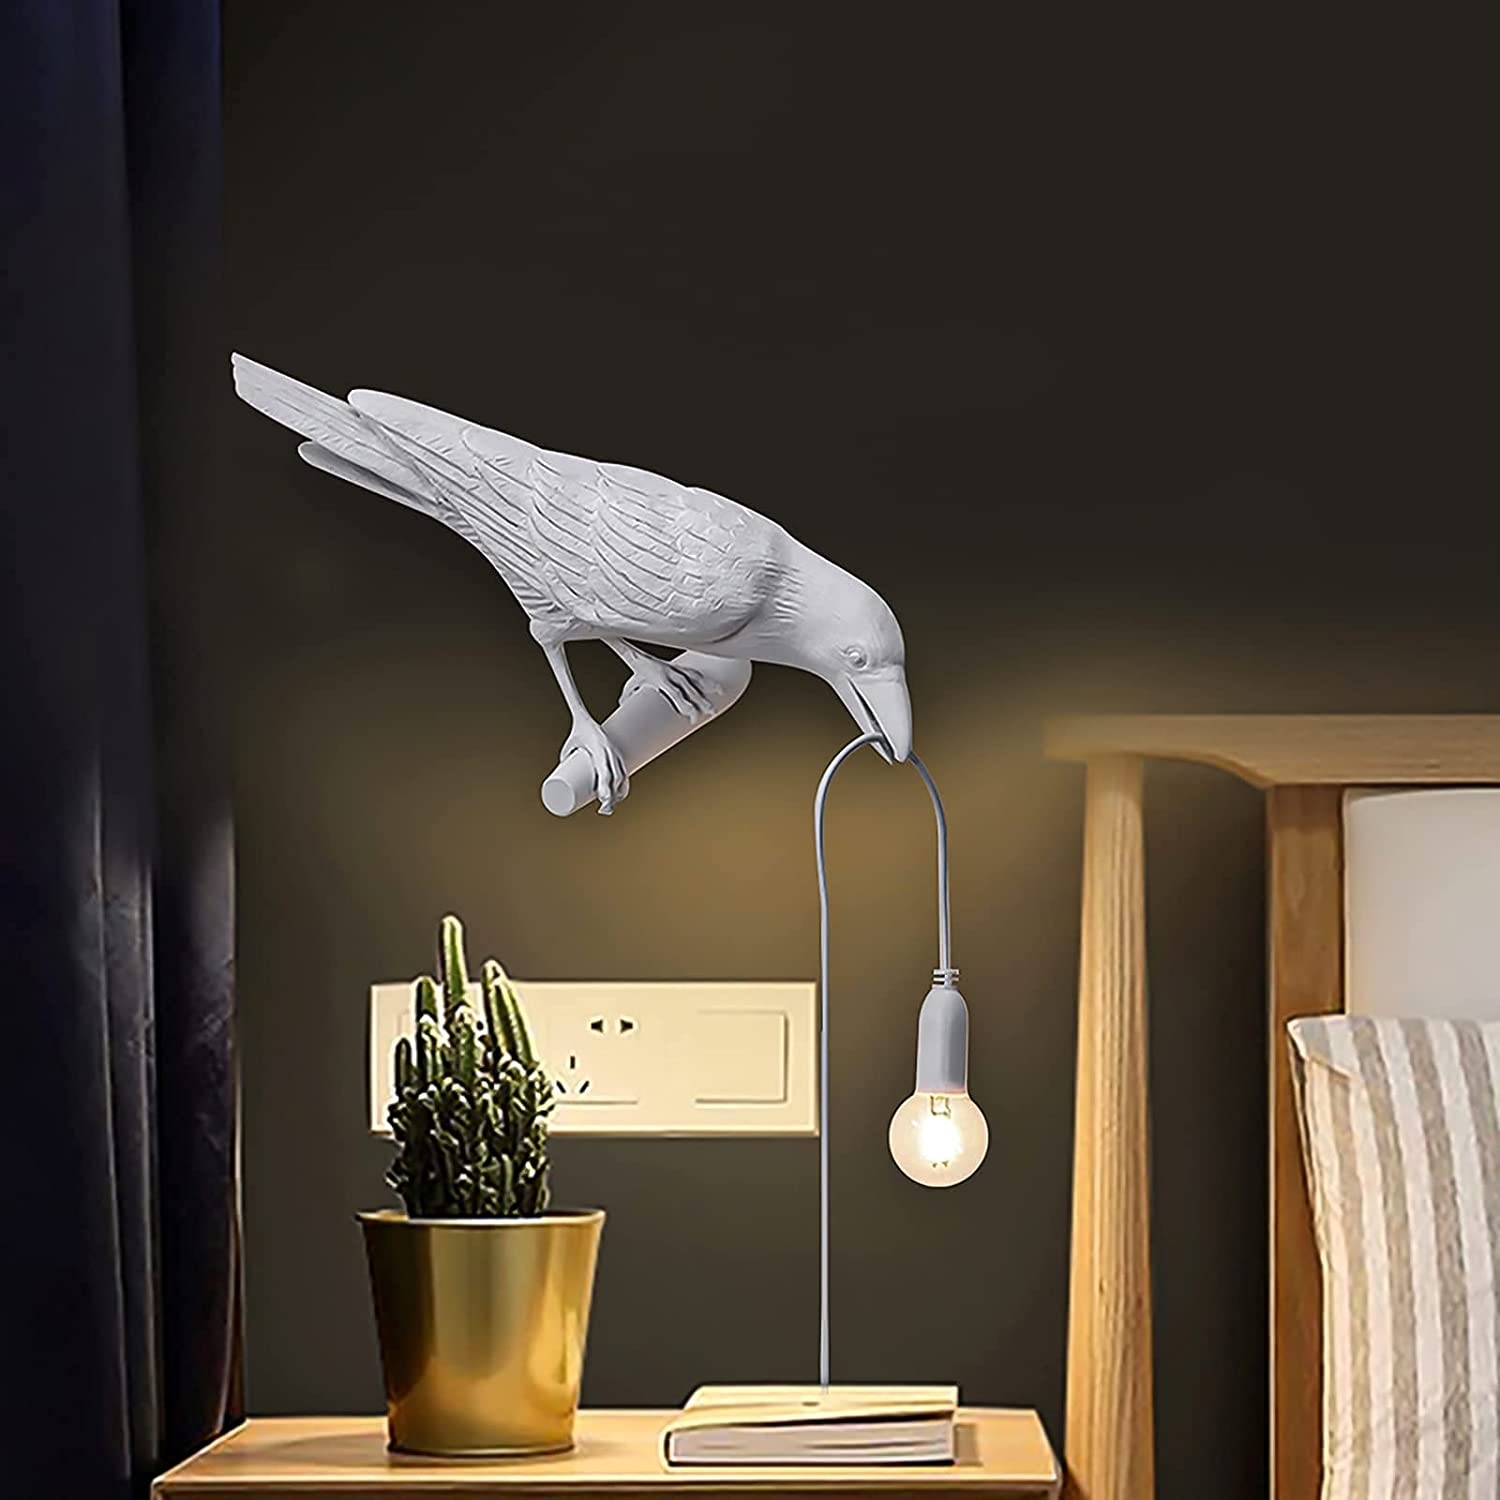 Raven Wall Sconce Resin Crow Lamp Table Birds Outlet SEAL limited product SALE Creative Desk